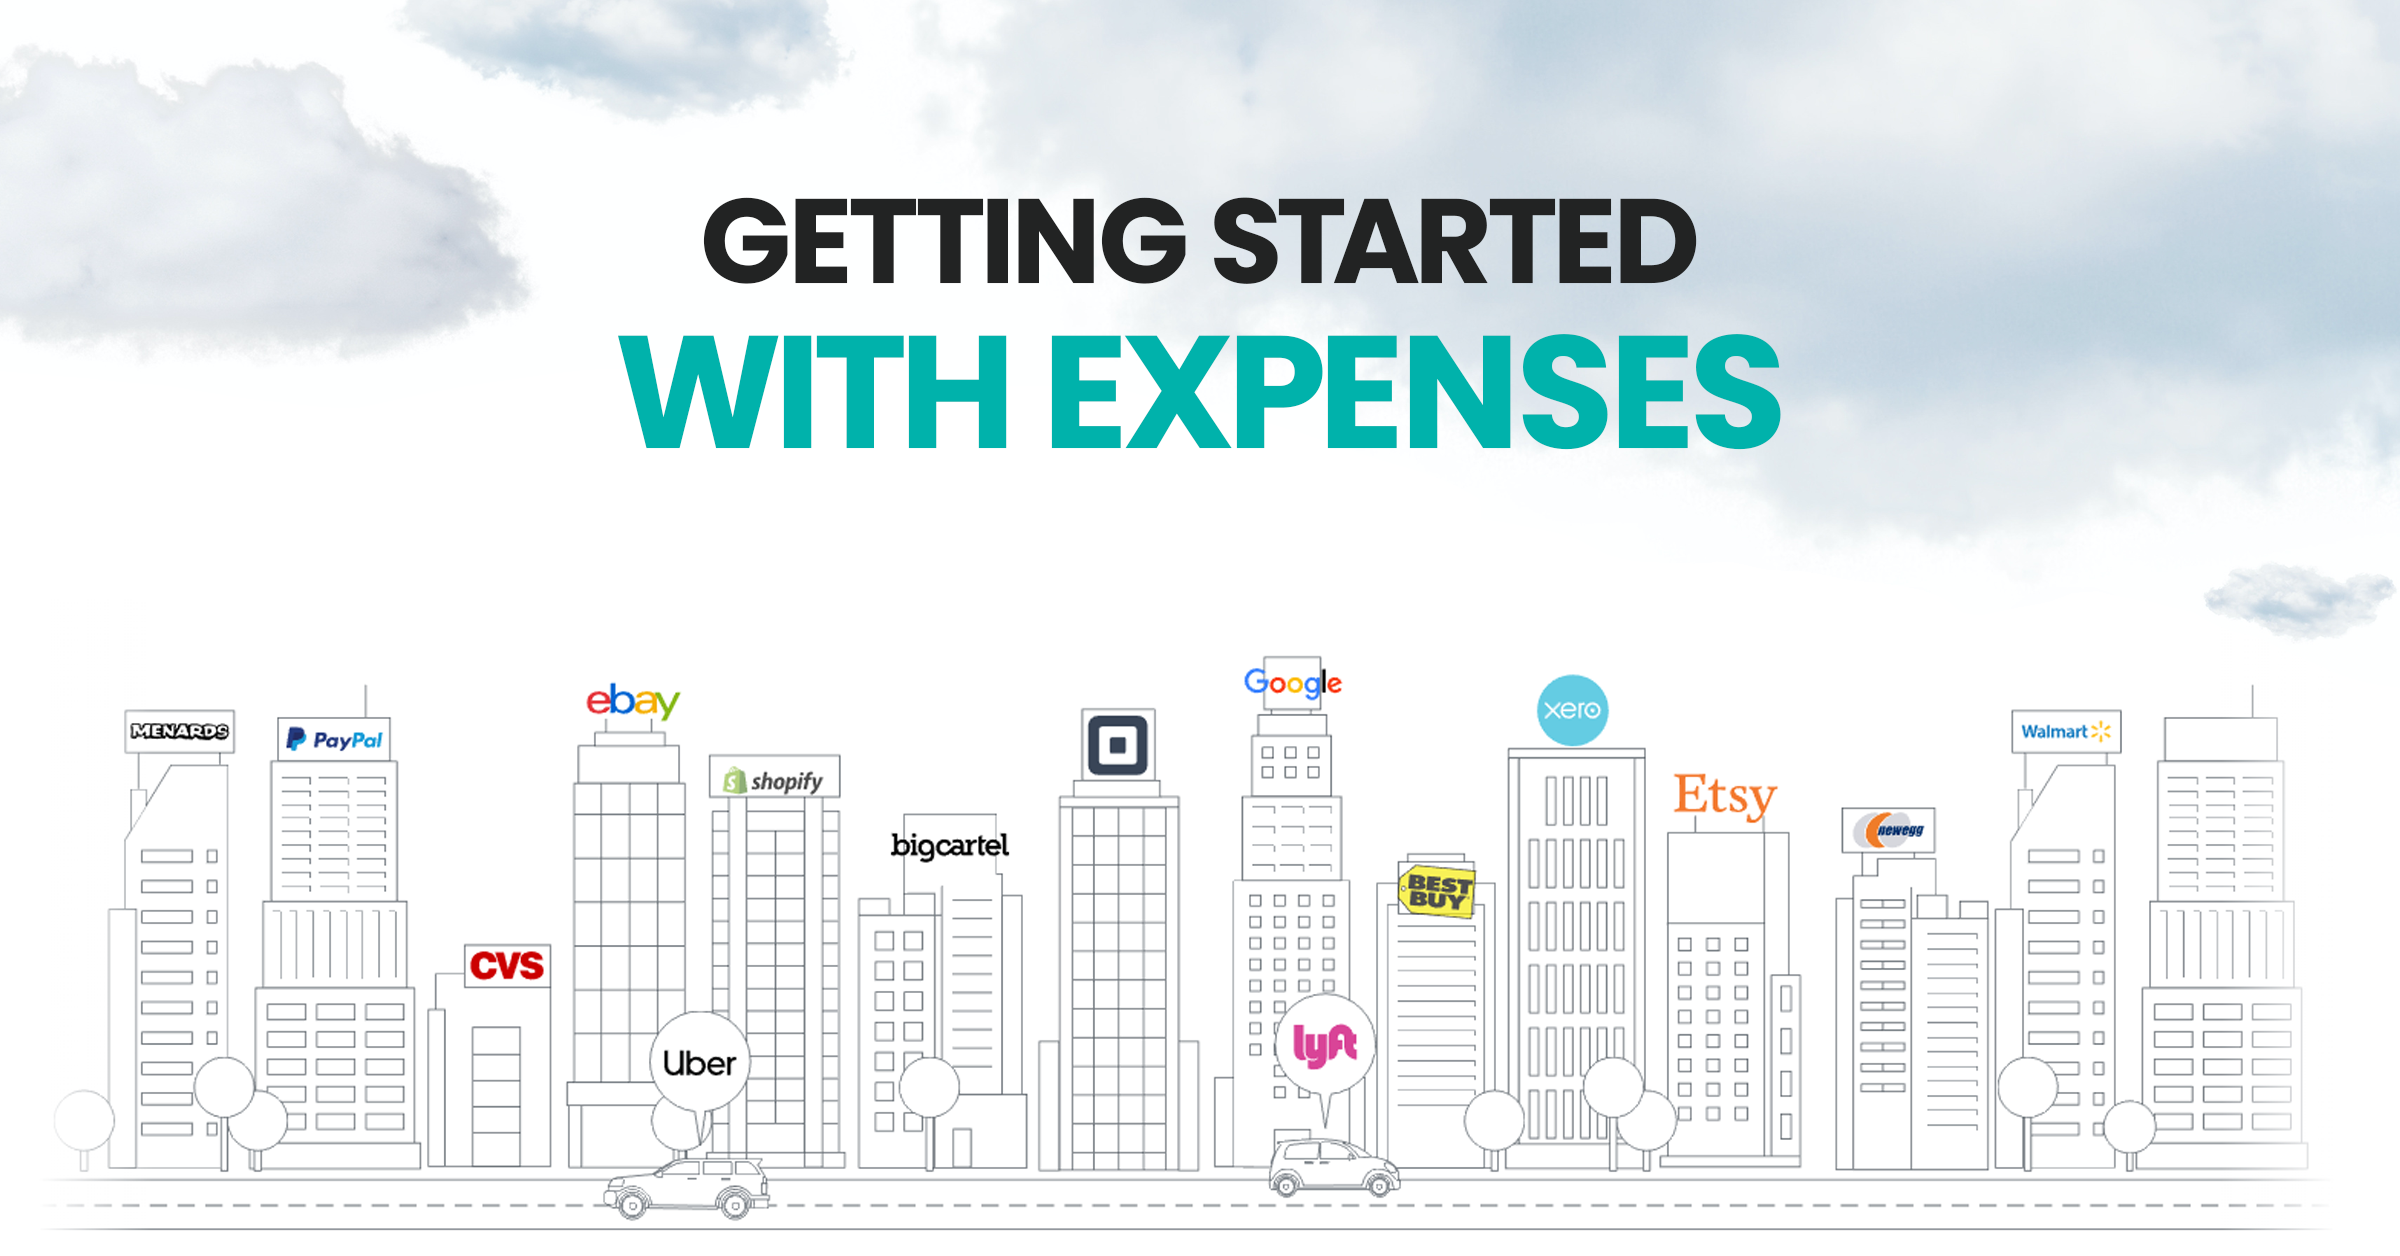 Getting Started with Expenses